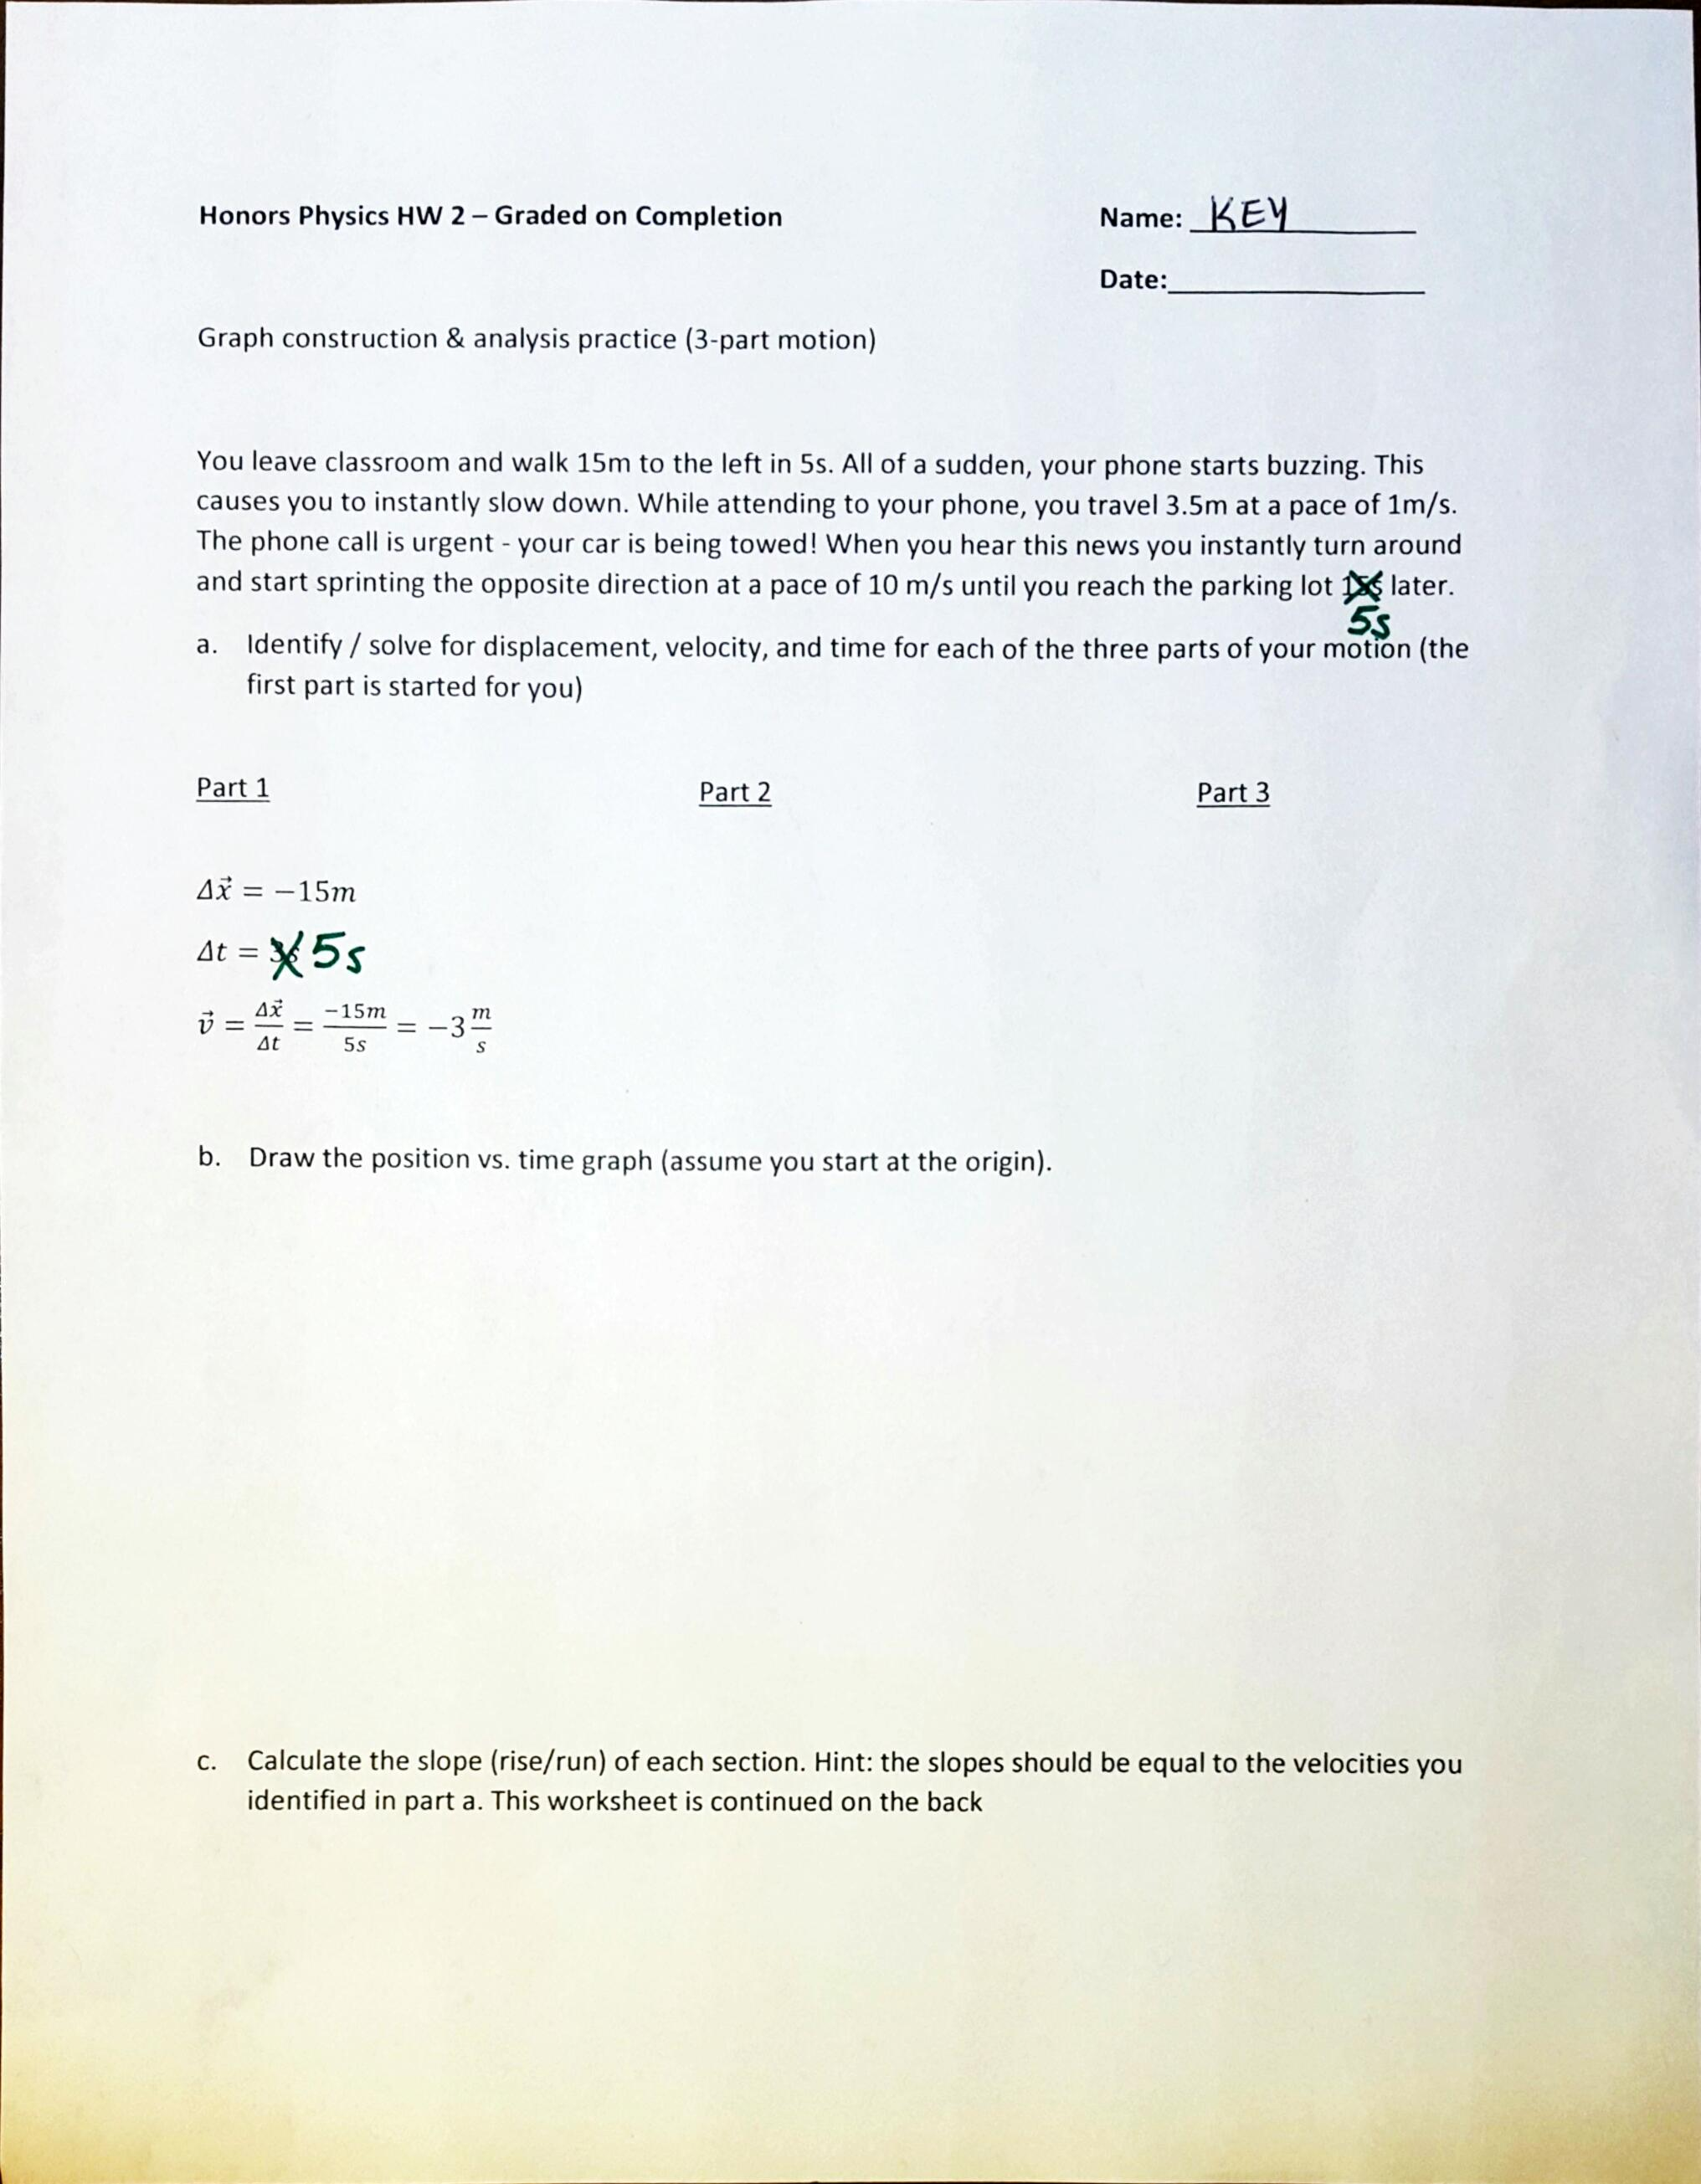 worksheet Coefficient Of Friction Worksheet chin rachel daily items hw due 2 24